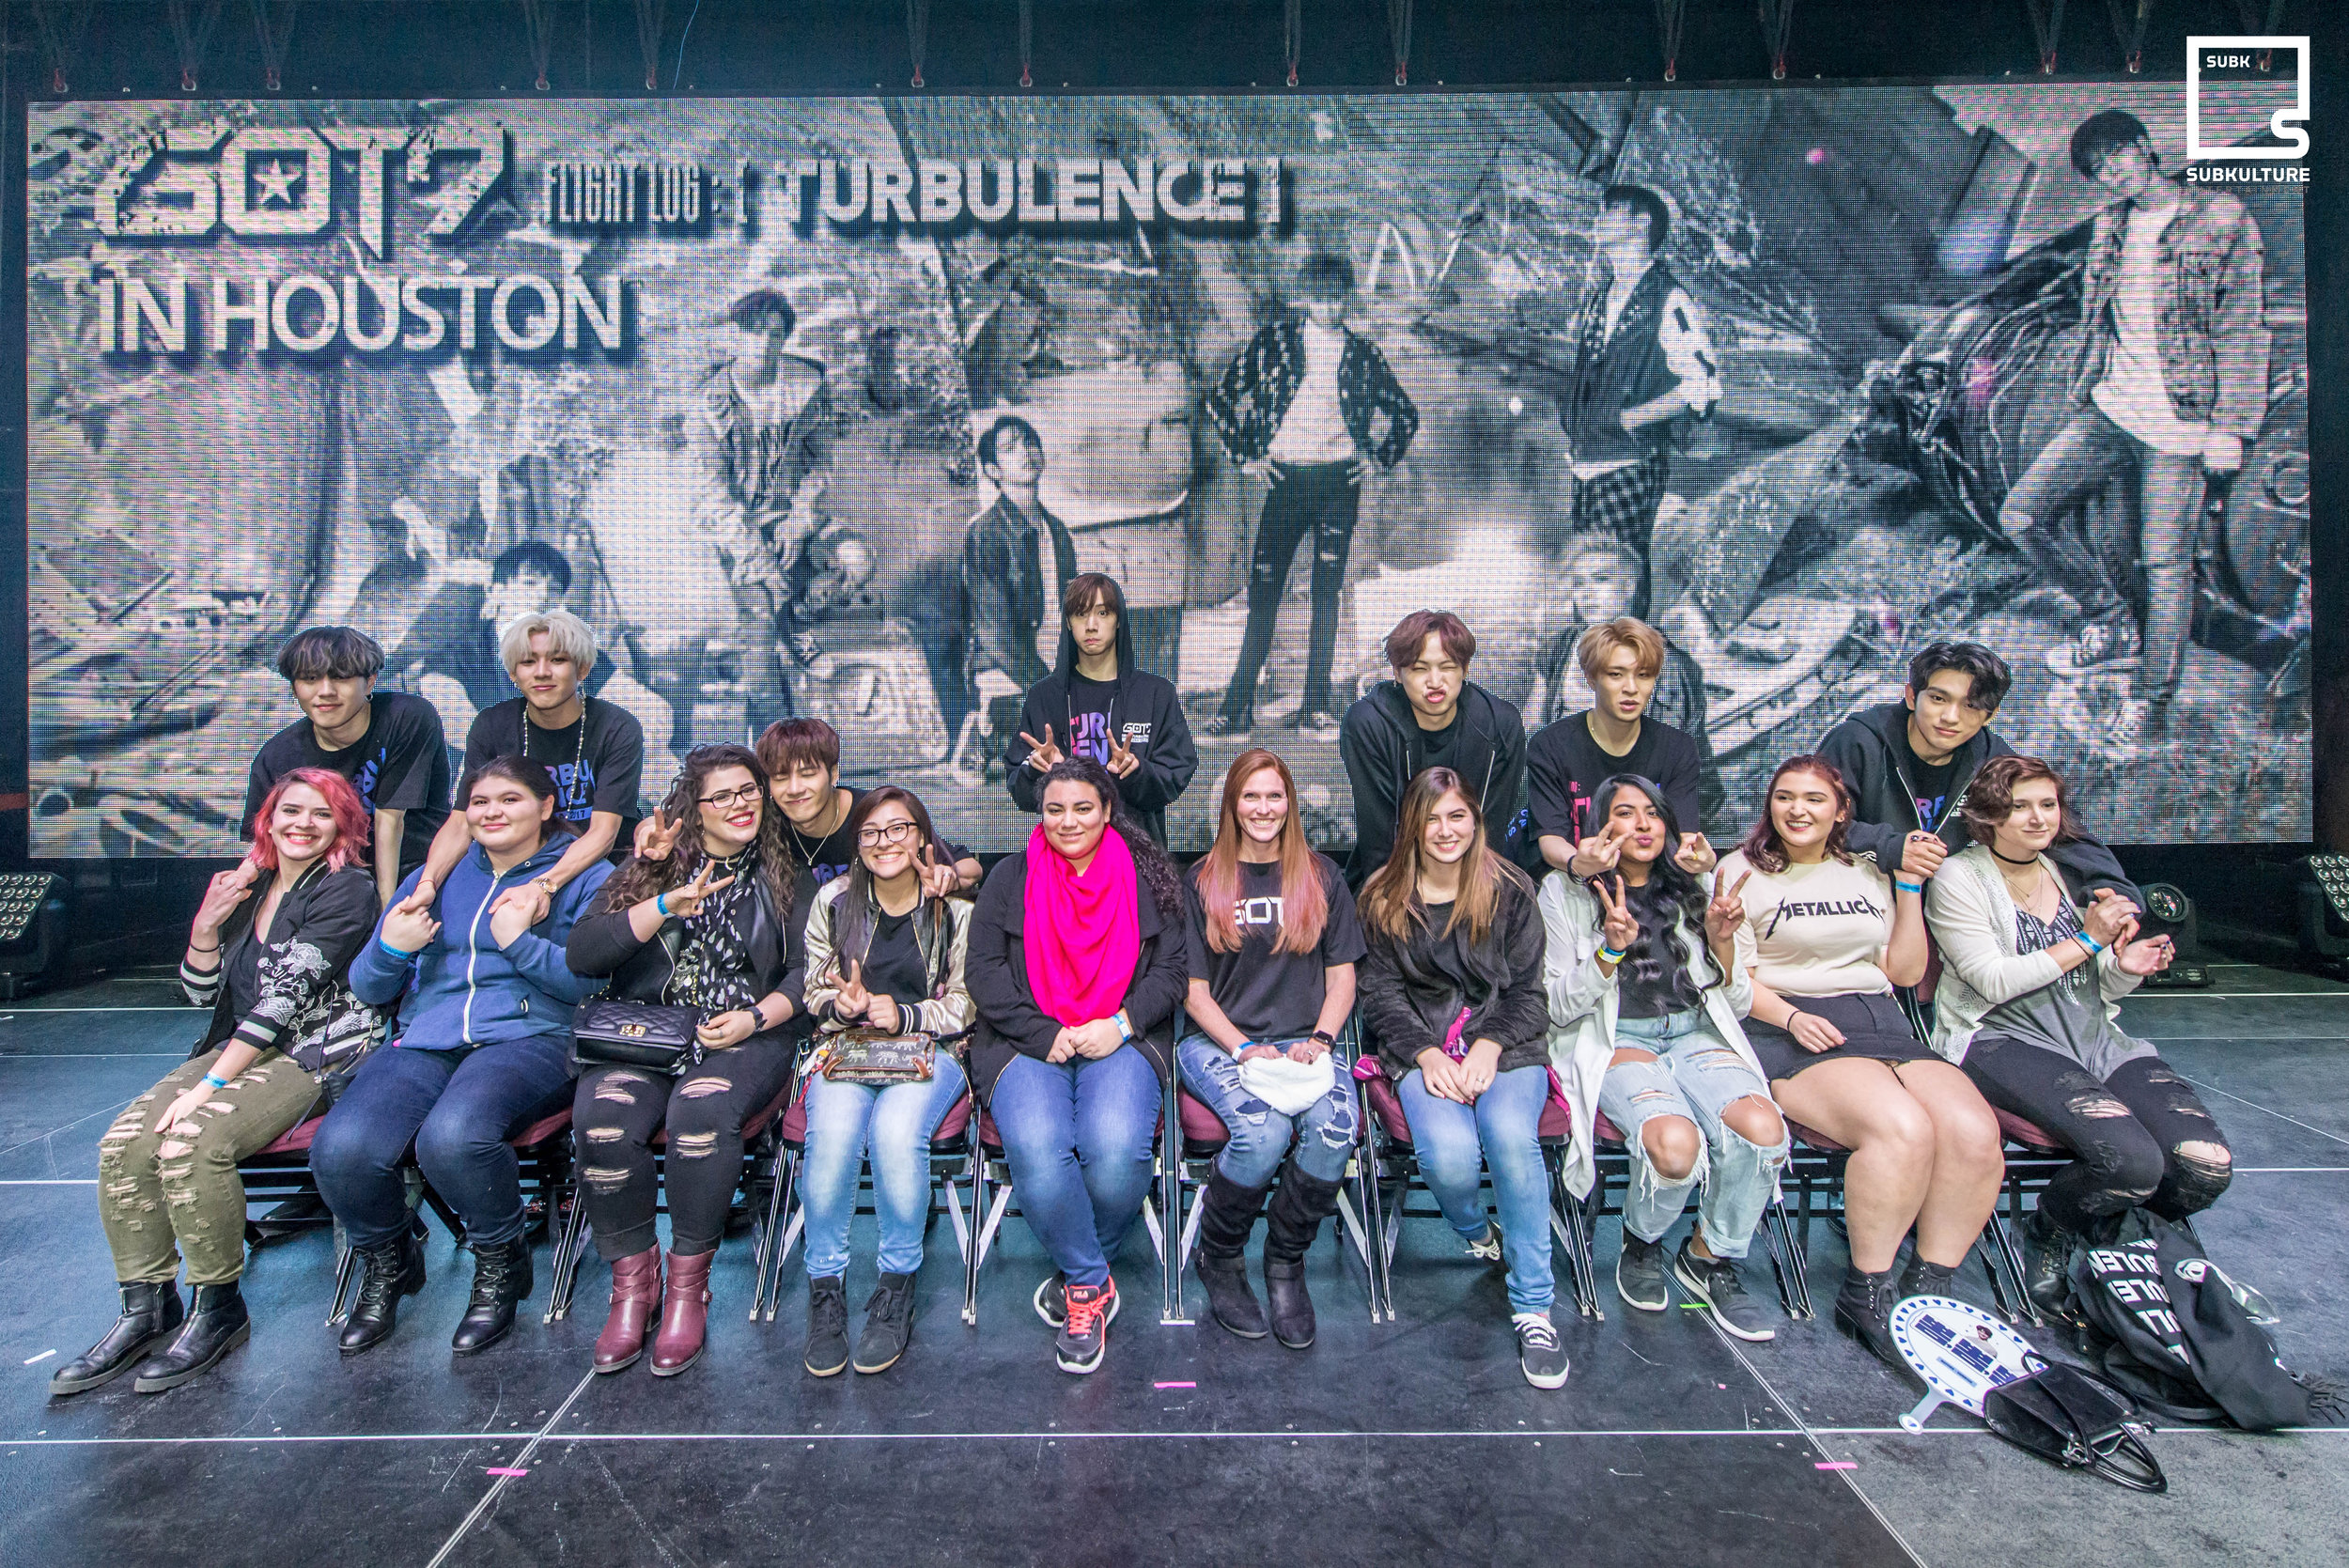 GOT7 Fan Photo Houston 2017 SubKulture Entertainment-3756 copy.jpg